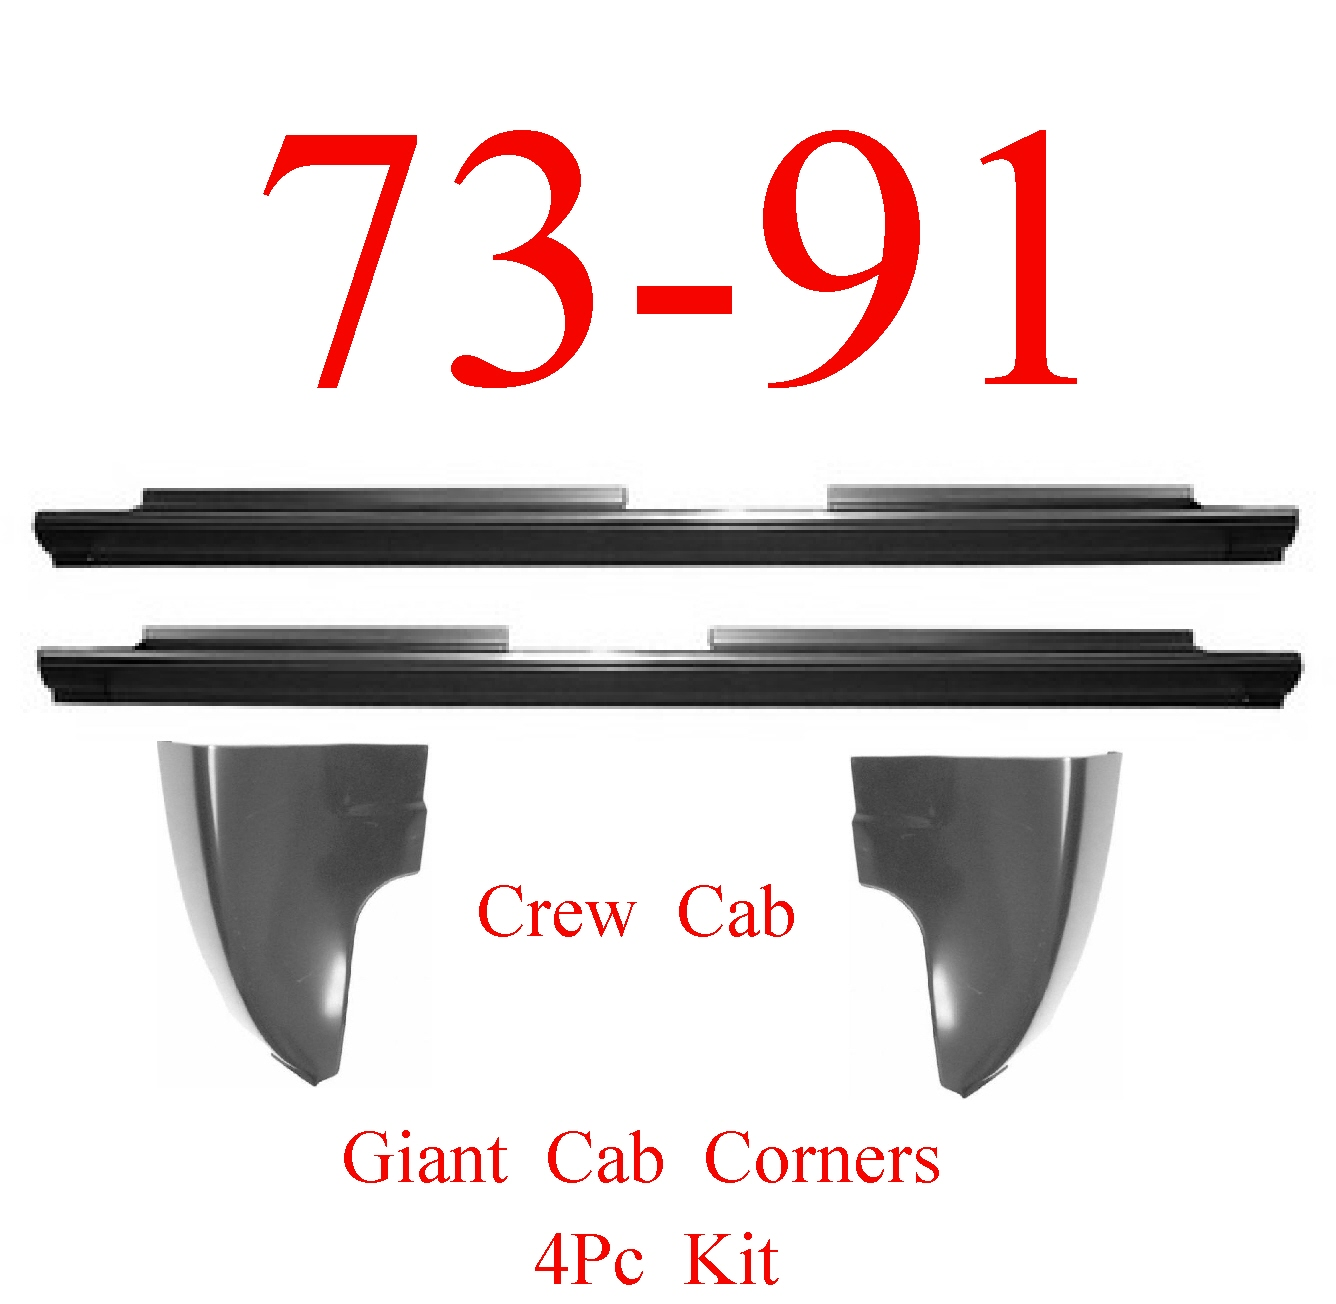 73-91 Chevy 4Pc Crew Cab Slip-On Rocker & Giant Cab Corner Kit